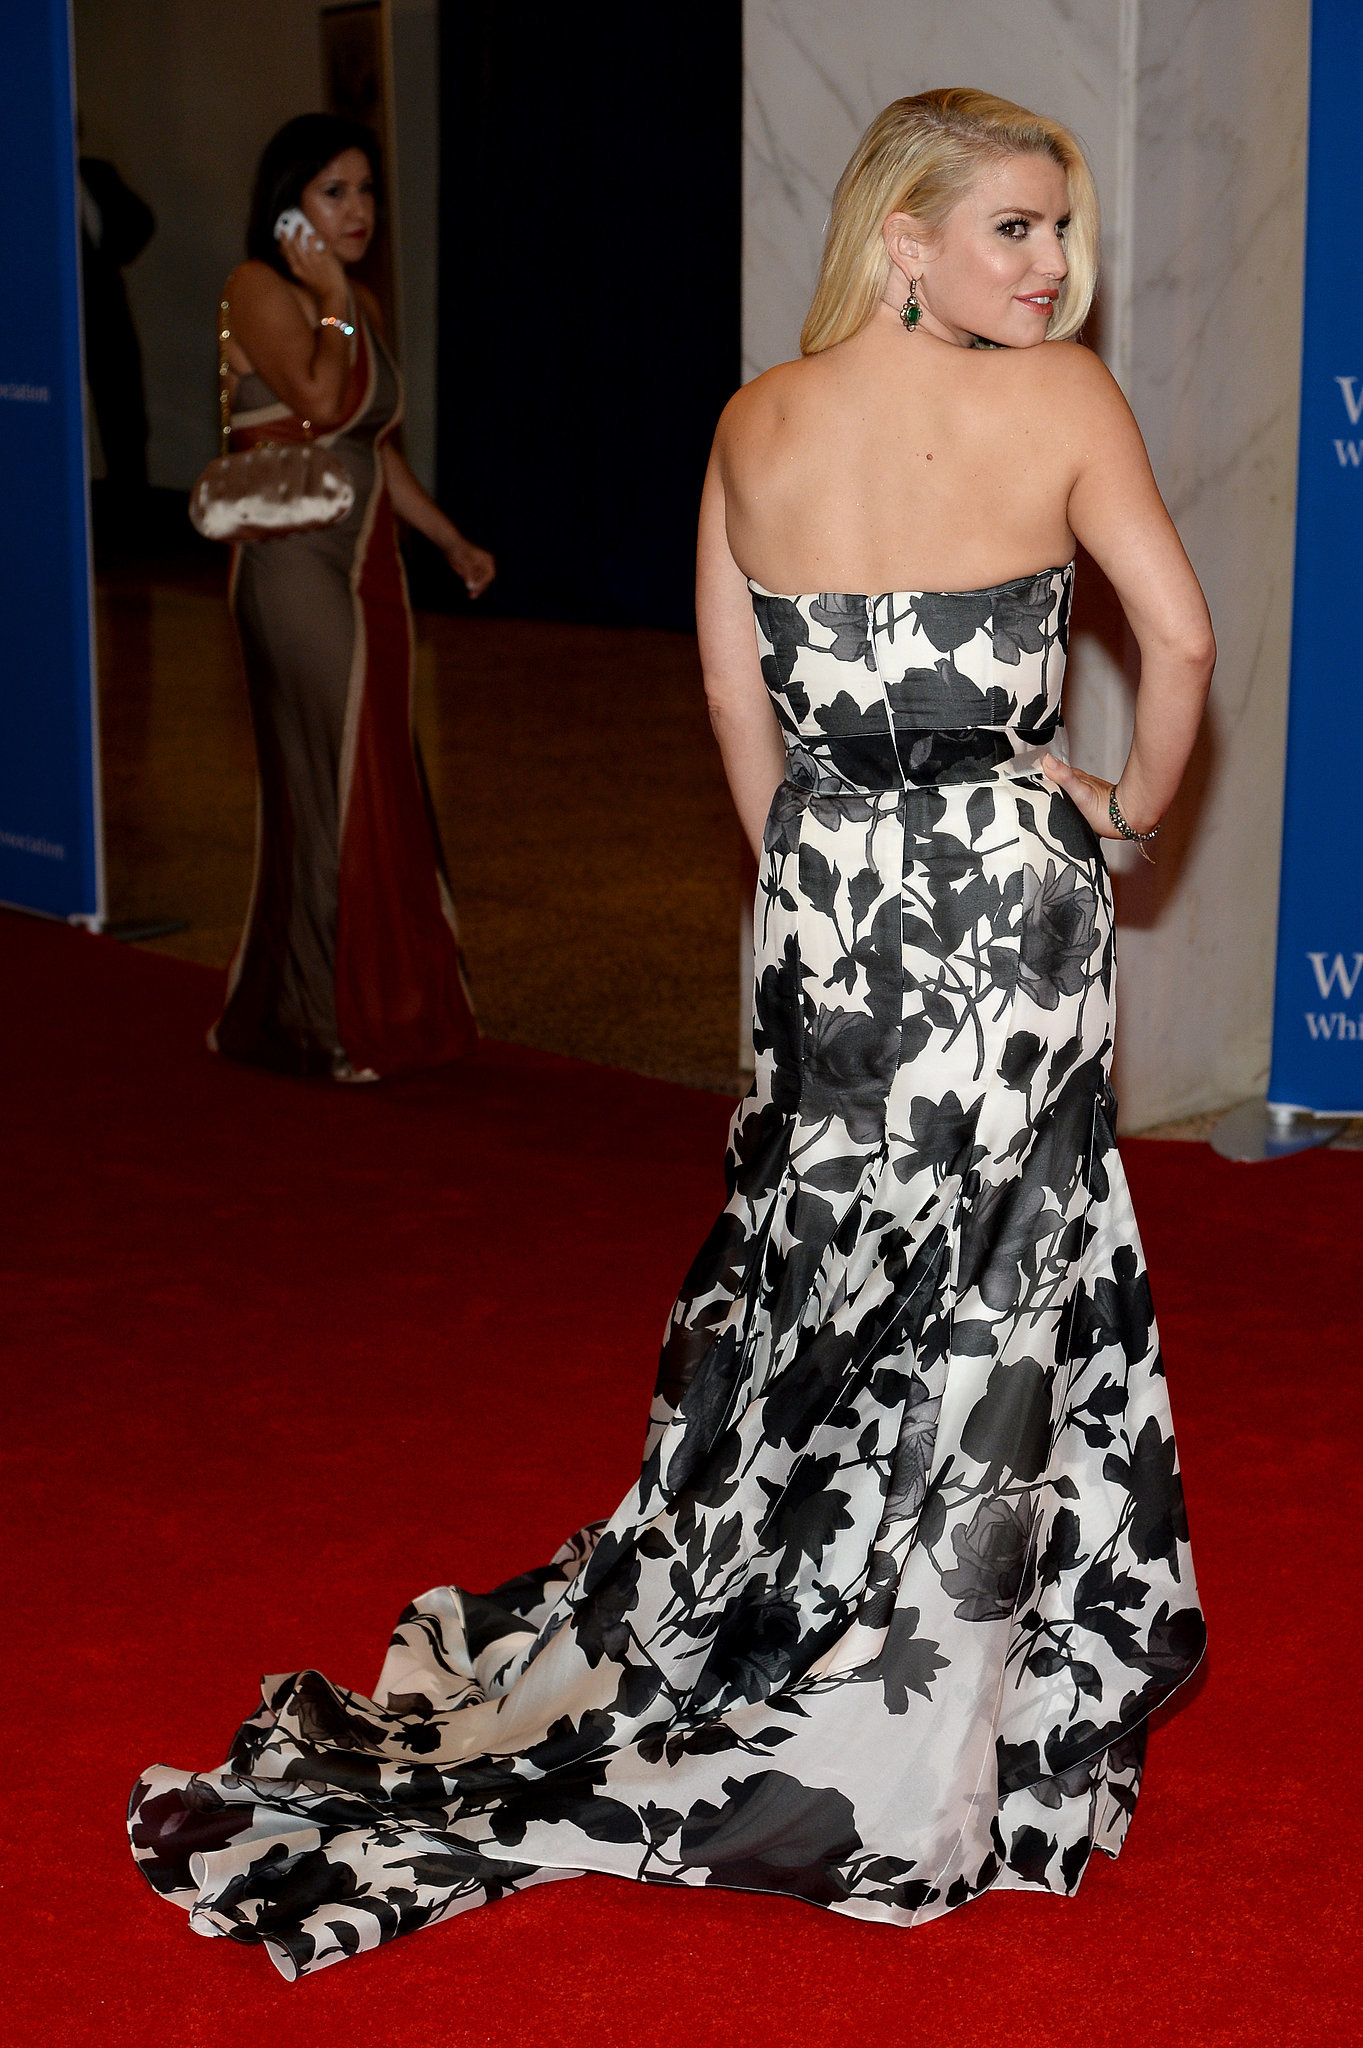 Jessica Simpson's dress featured a flowing train.